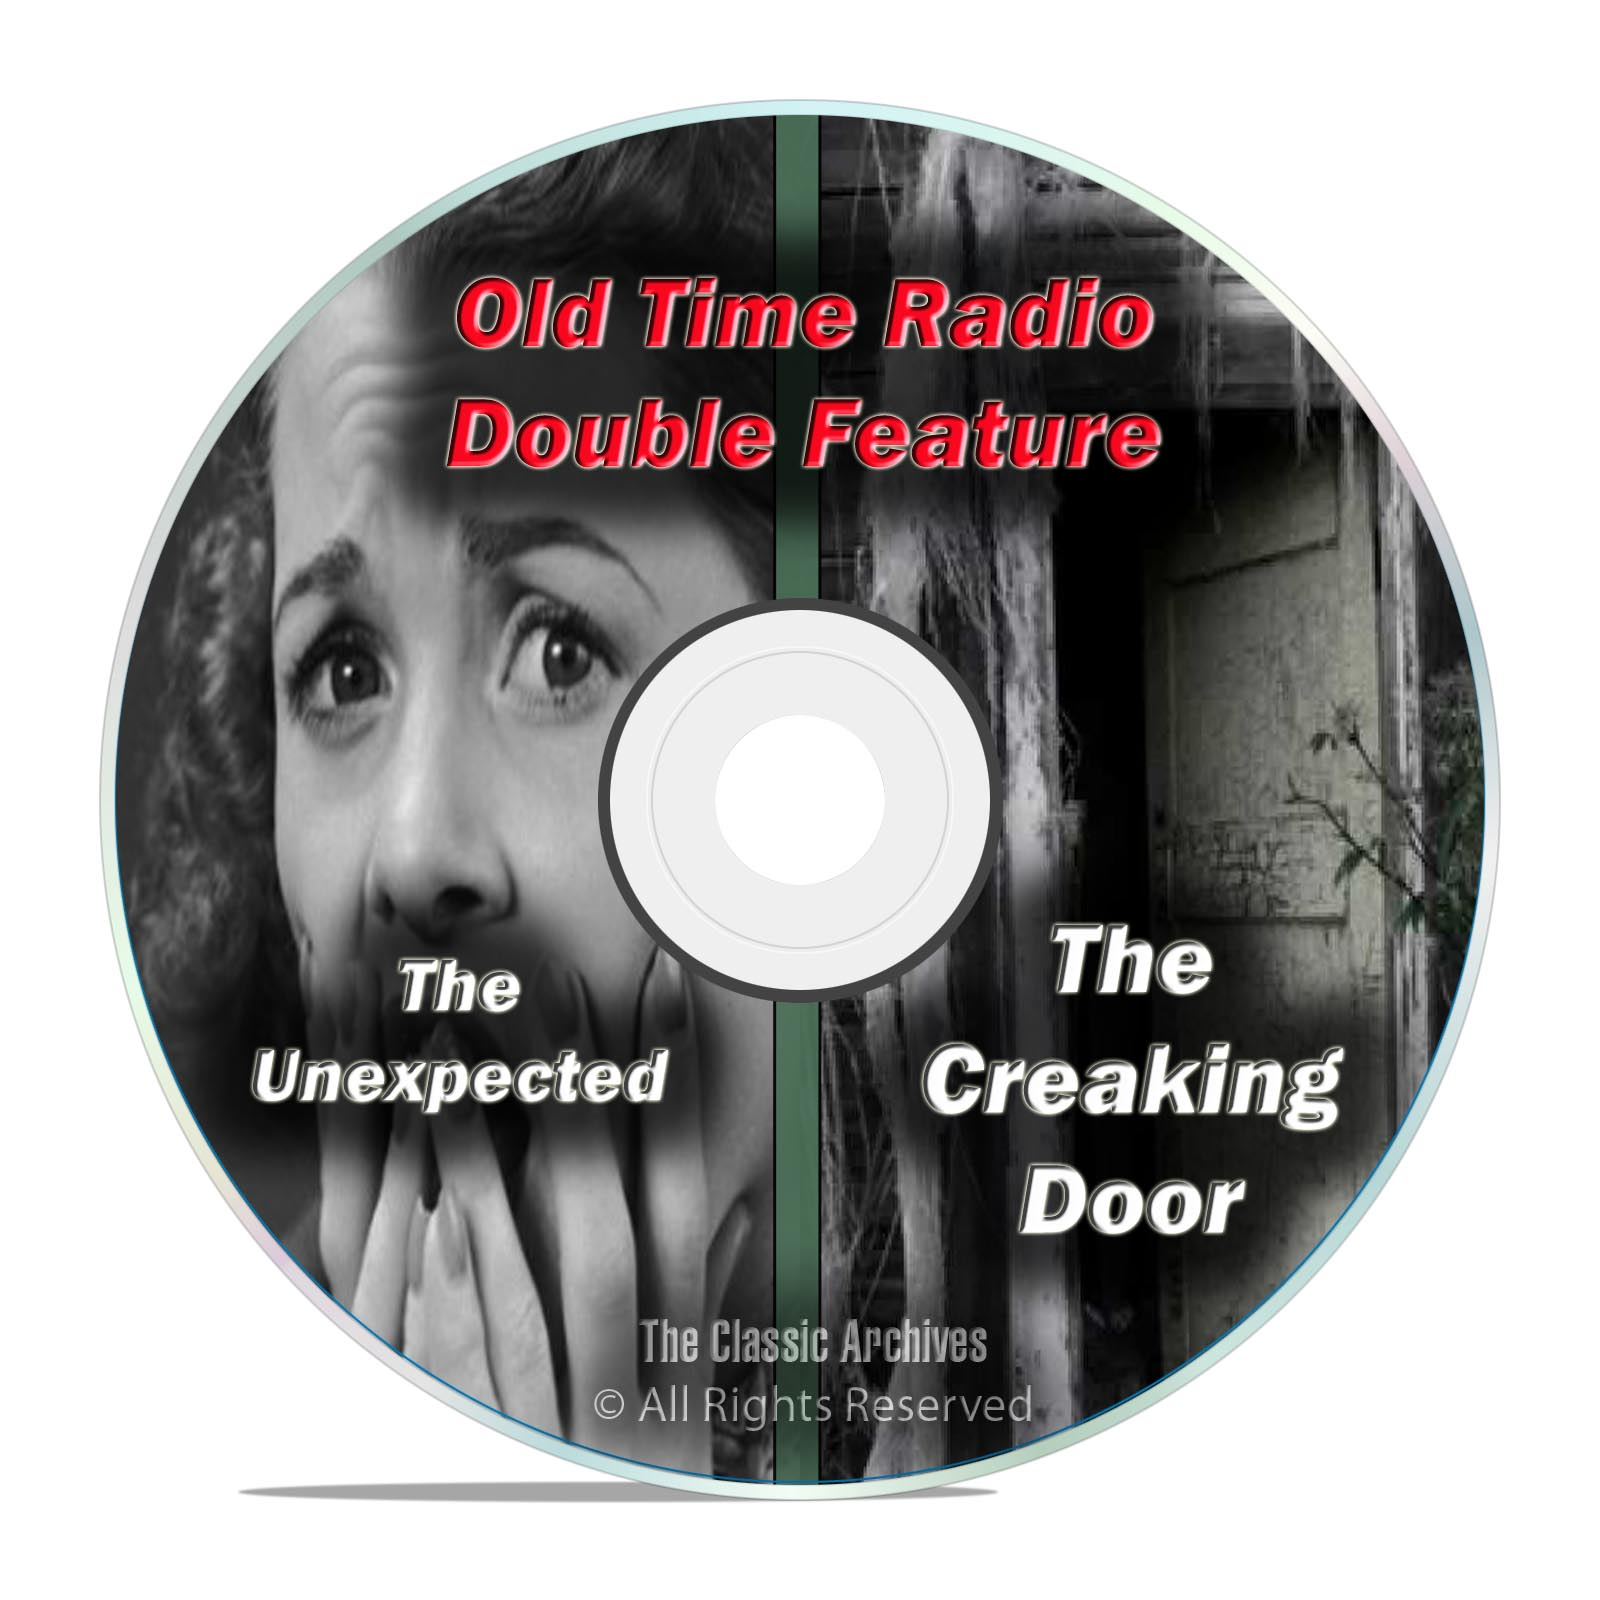 THE CREAKING DOOR & THE UNEXPECTED, 303 shows, FULL SET, Old Time Radio DVD